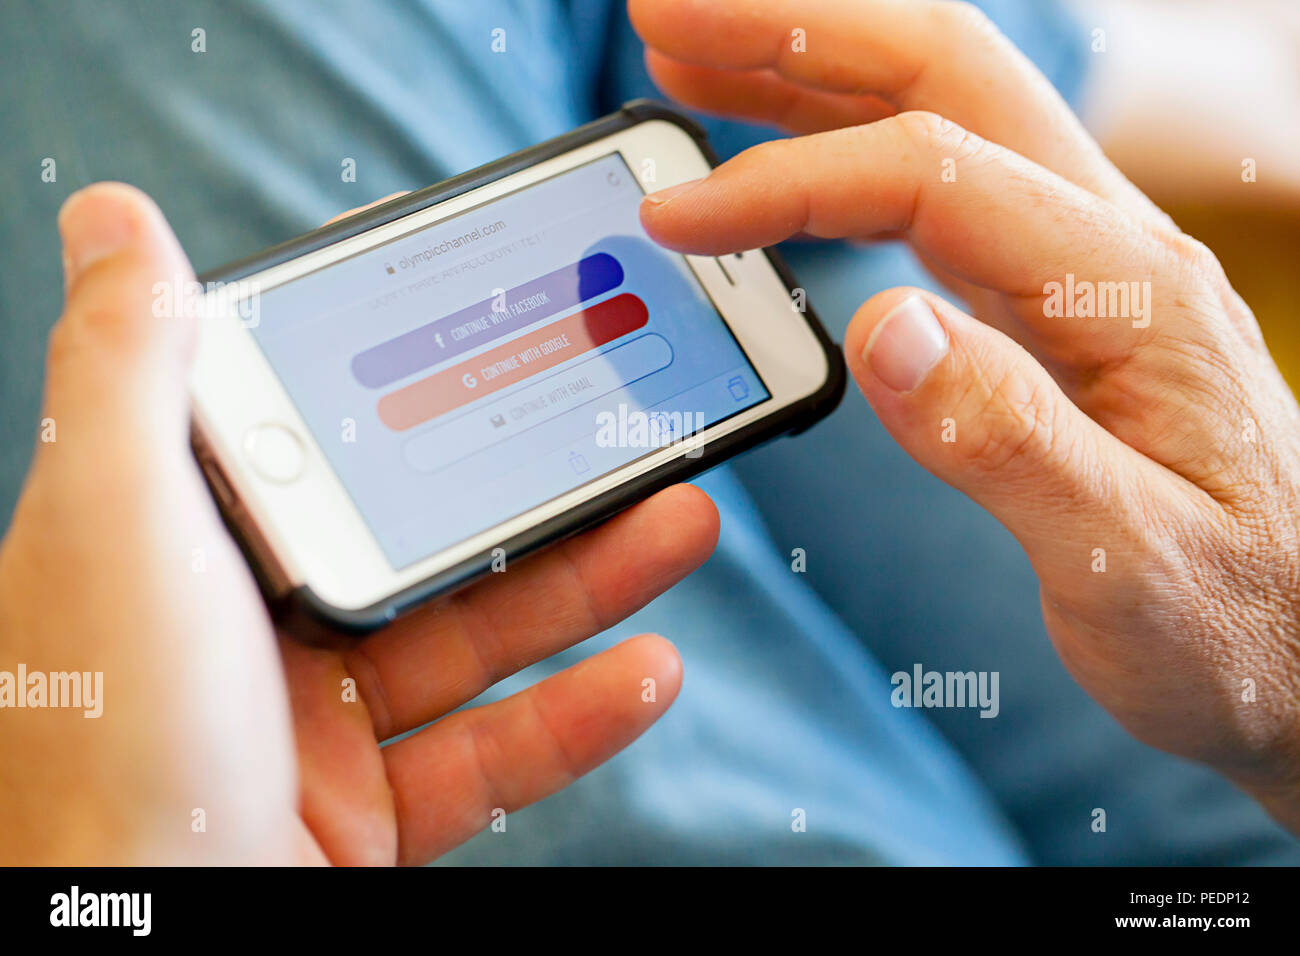 Sign in screen options on iphone screen - Stock Image